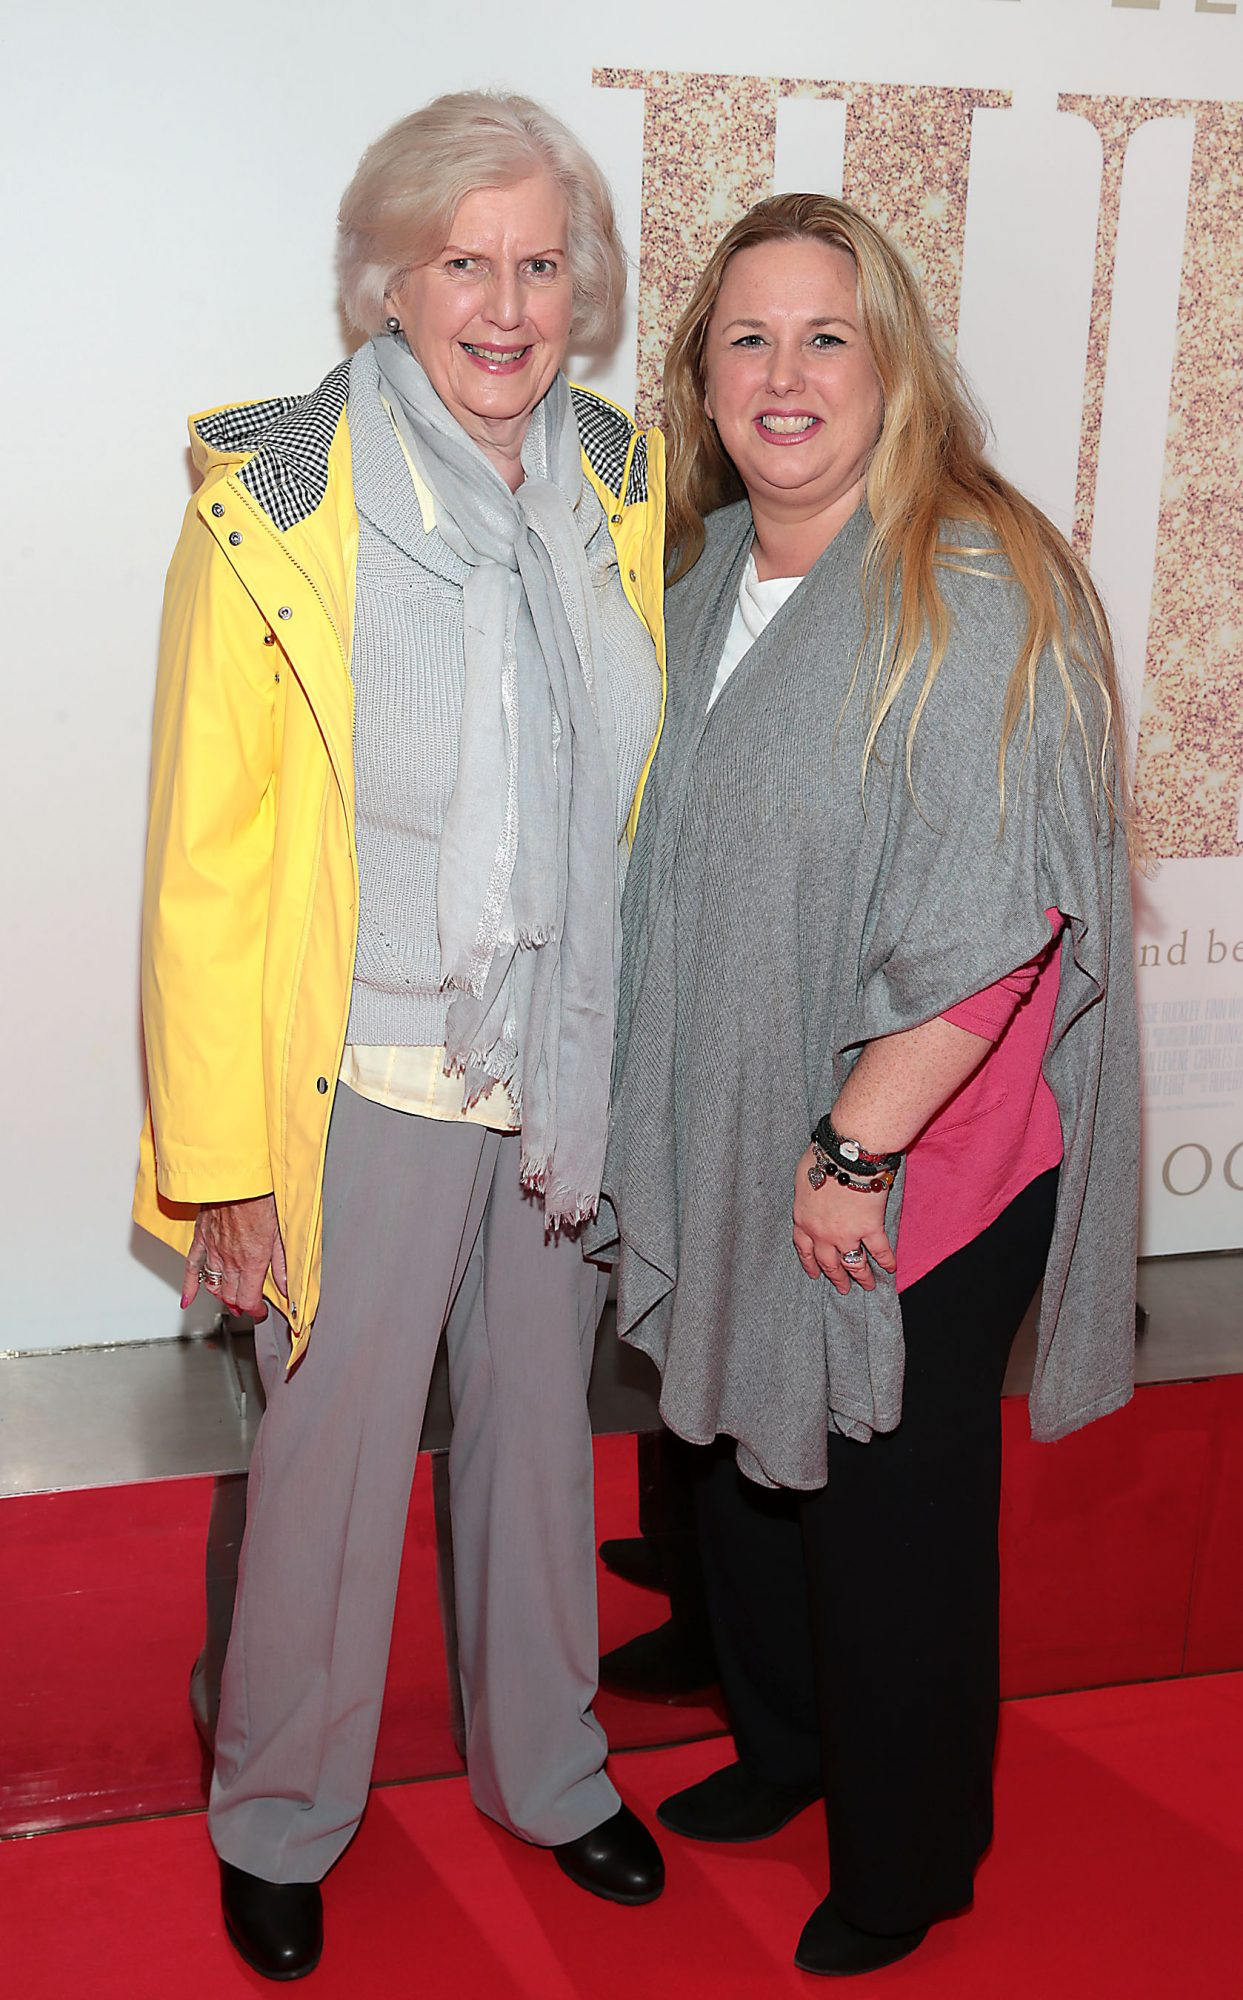 Kathryn Reynolds and Maria Panza pictured at the Irish Premiere of Judy at the Lighthouse Cinema, Dublin.  Pic: Brian McEvoy.